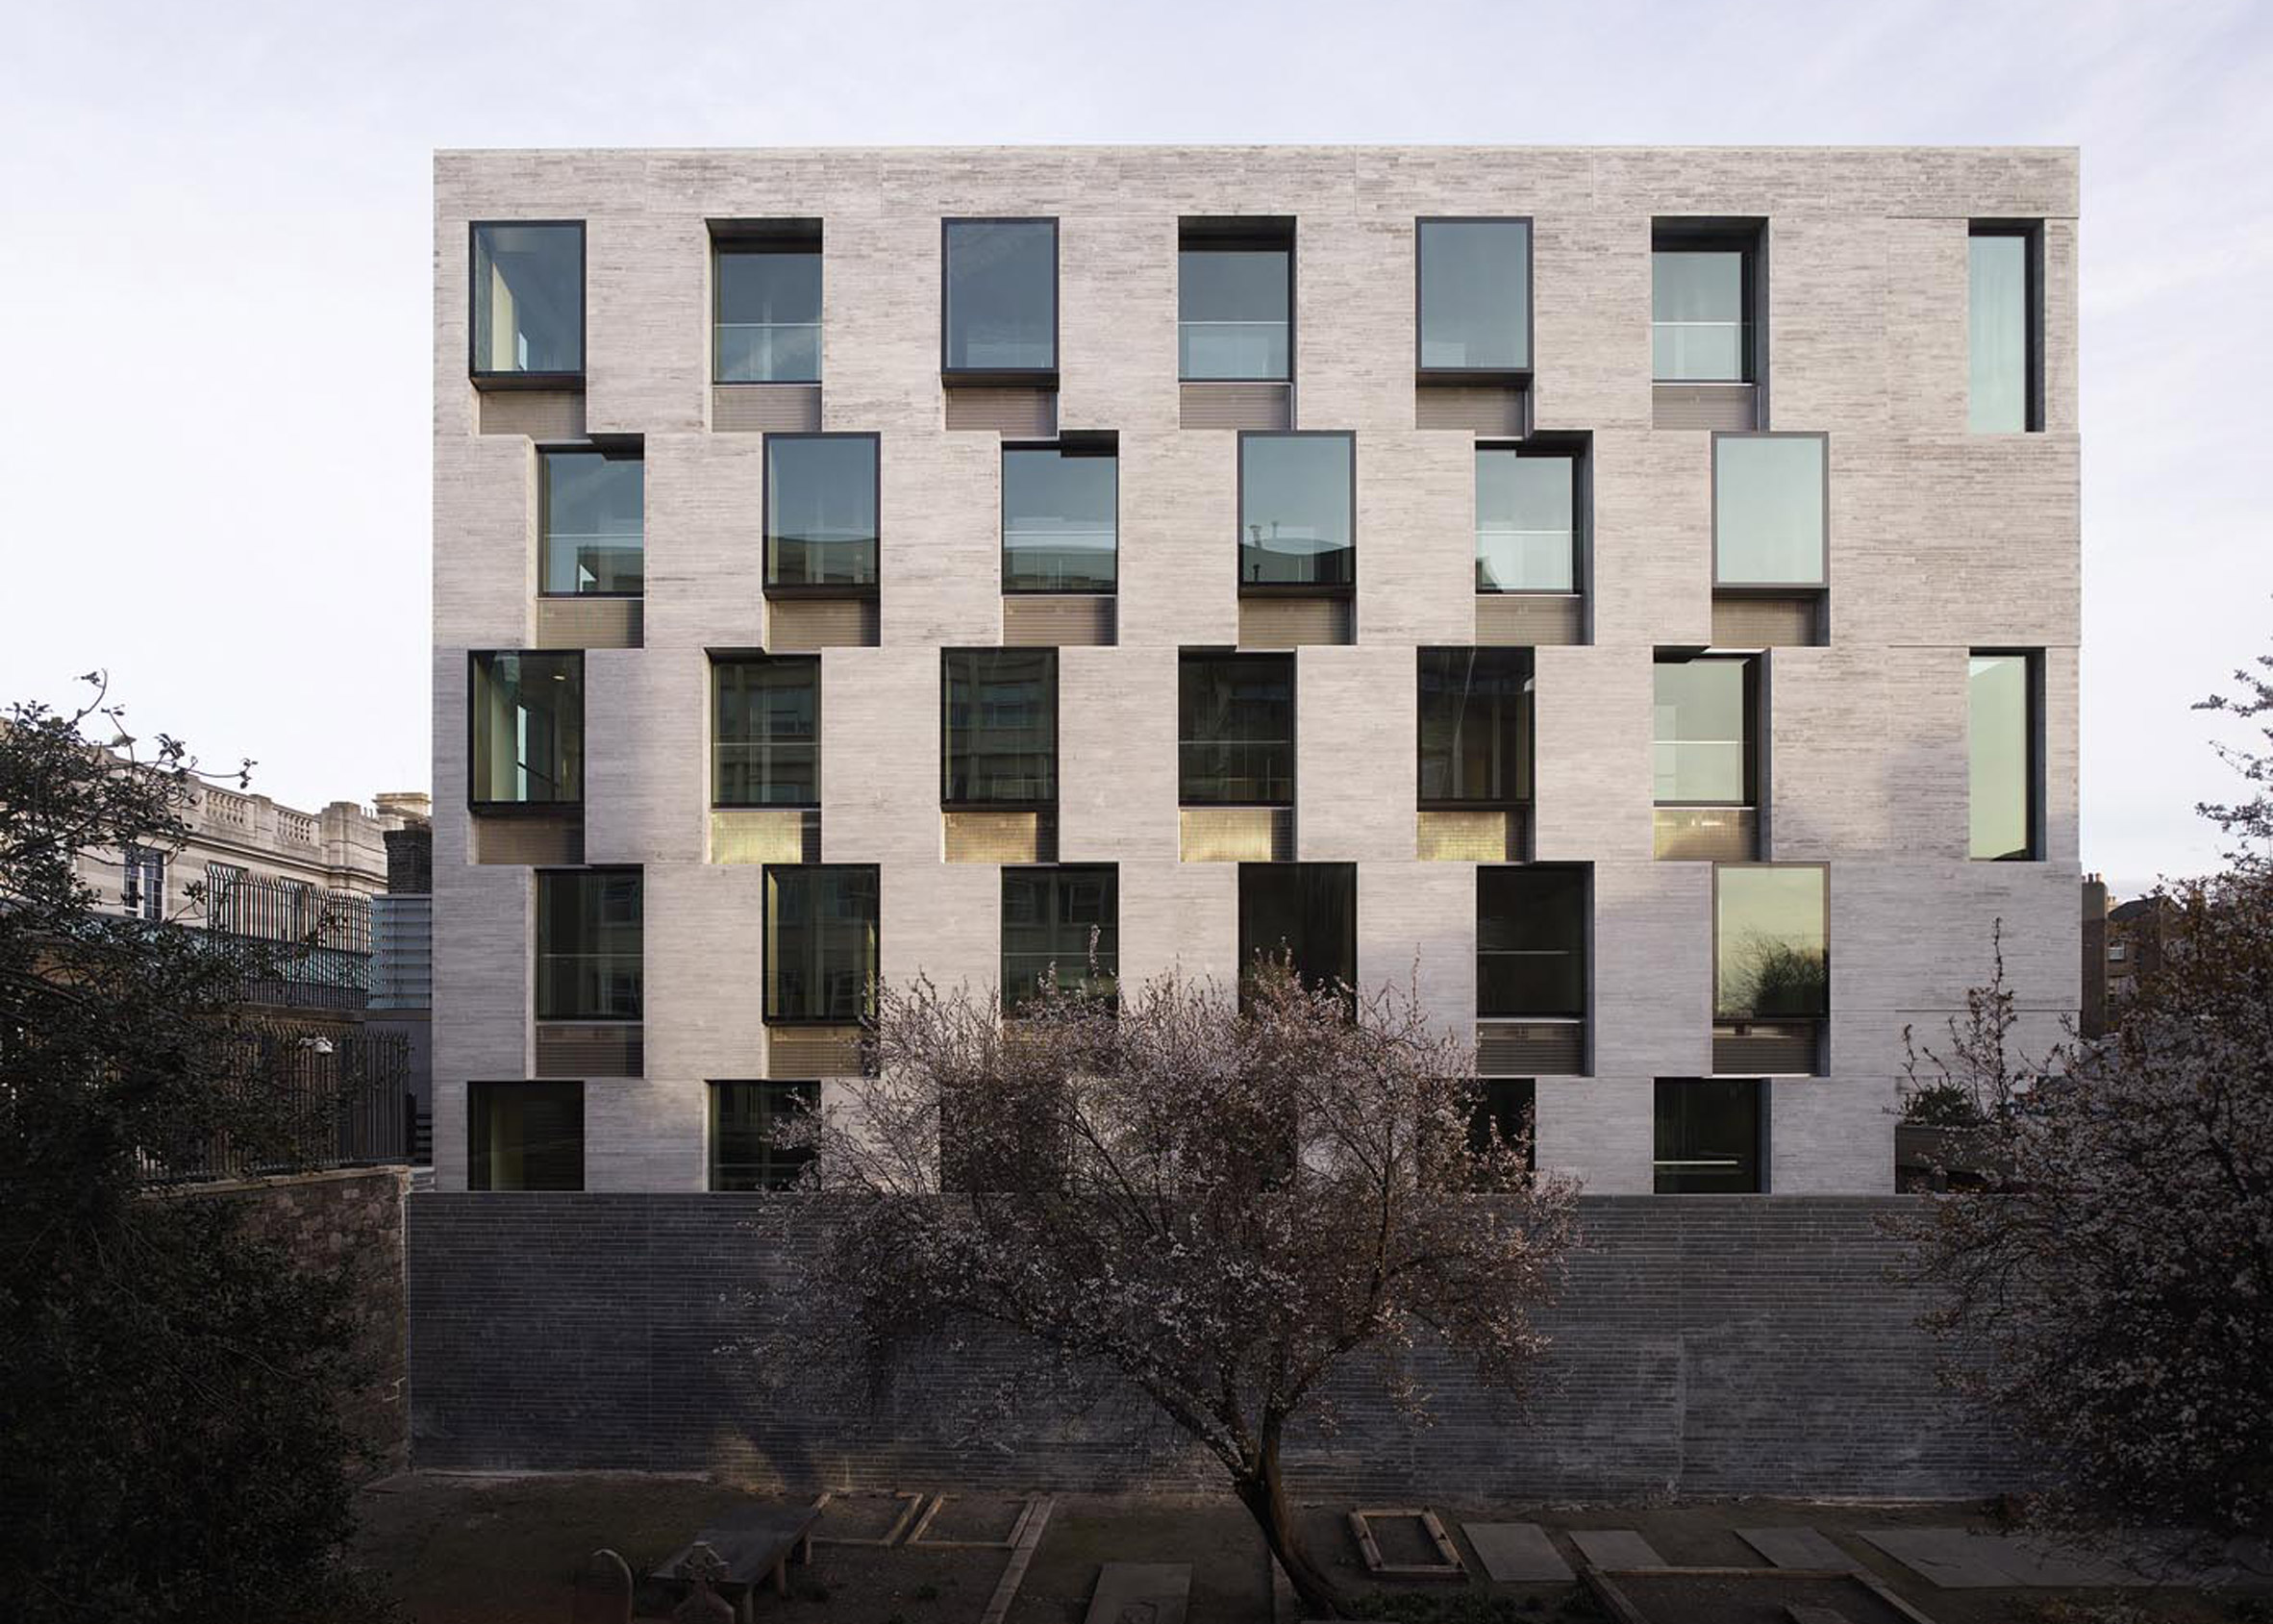 Offices for the Department of Finance; Dublin, Ireland, 2009